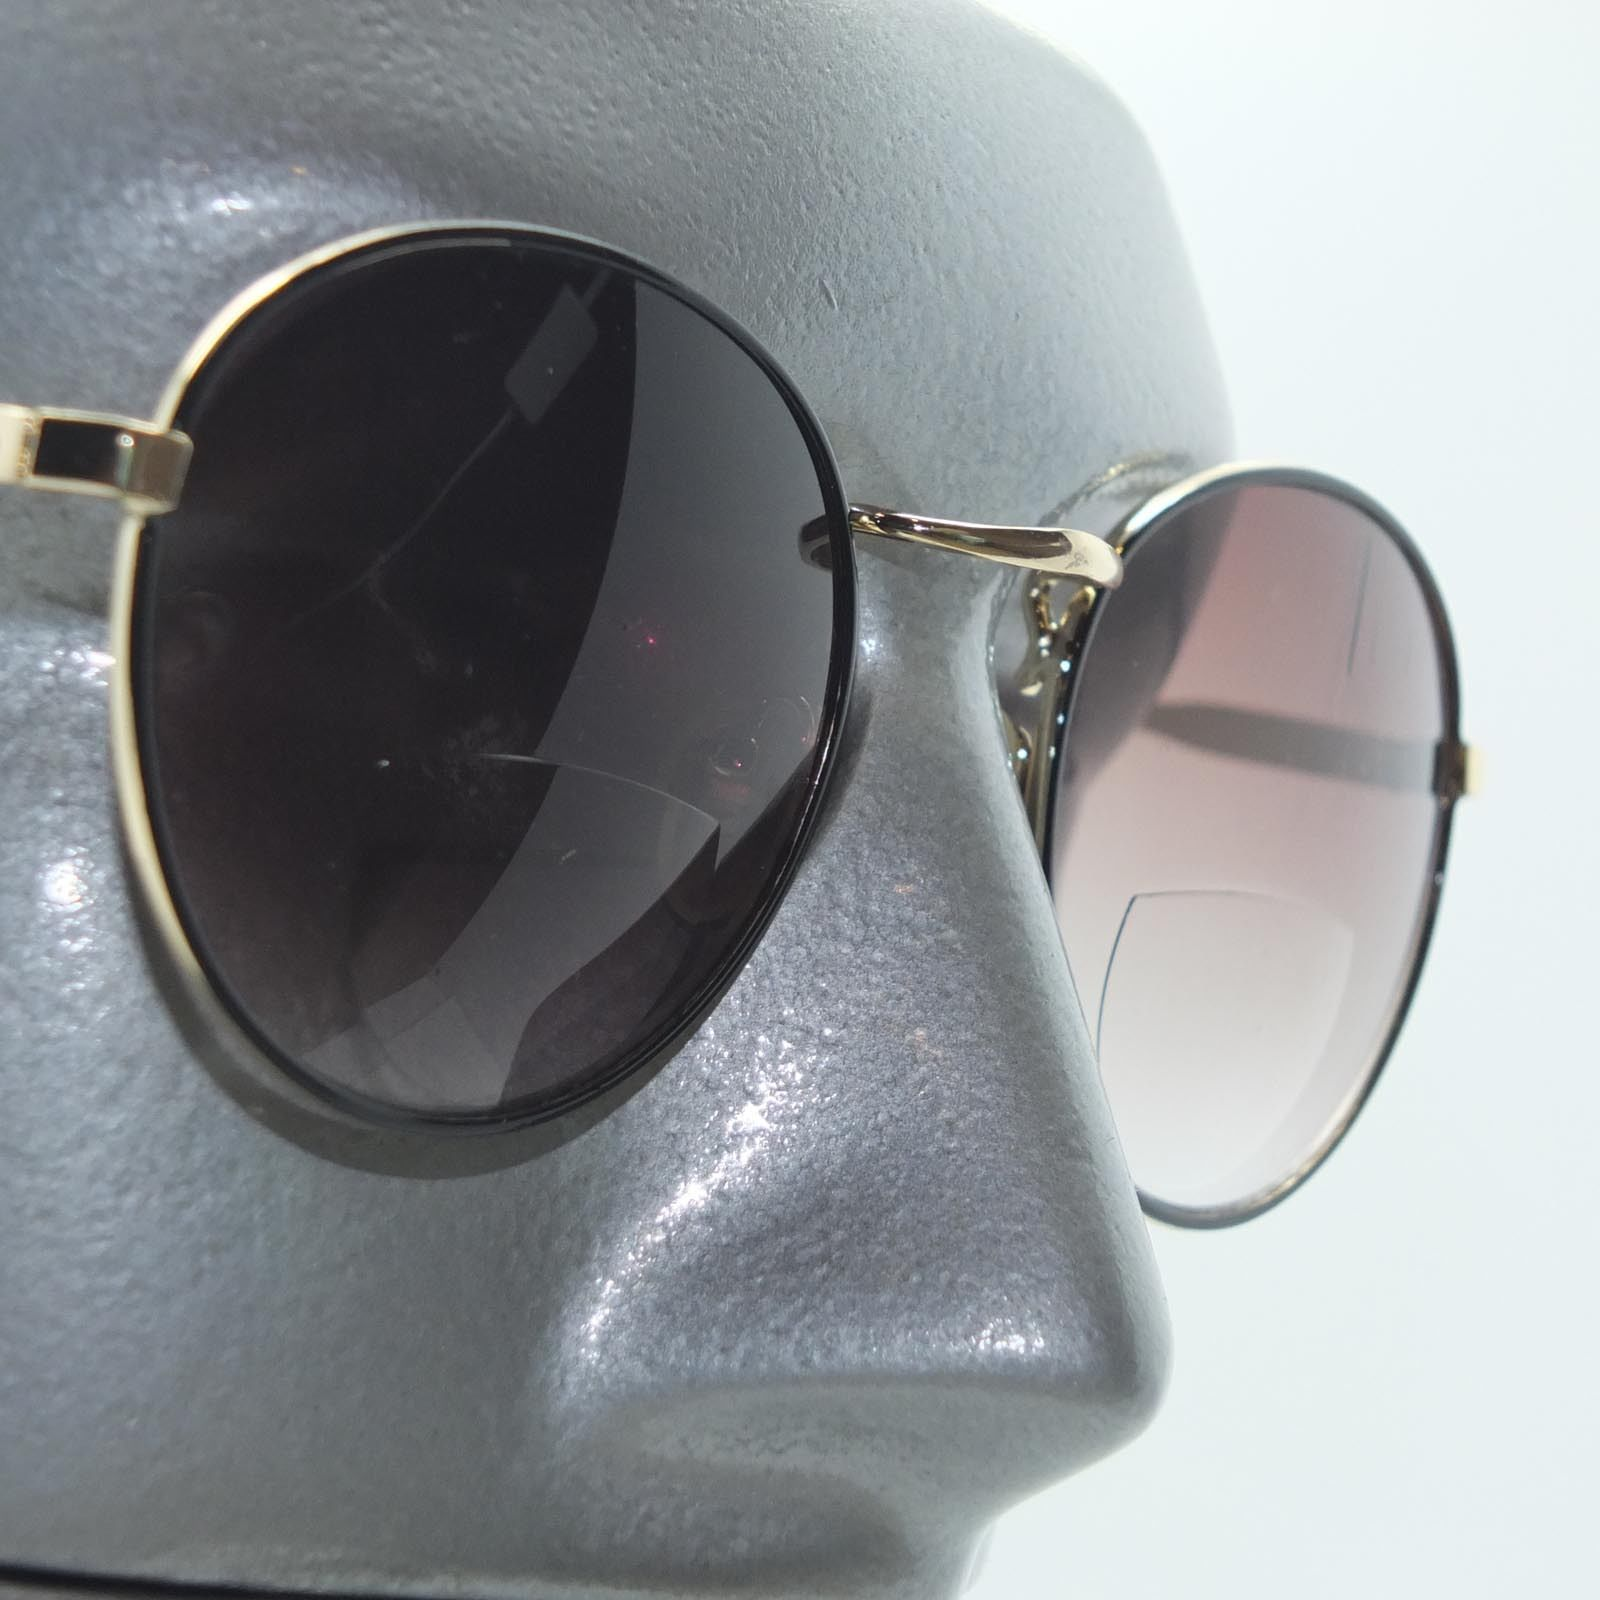 81a6d631b6 Bifocal Tinted Reading Glasses Sunglasses and 50 similar items. S l1600